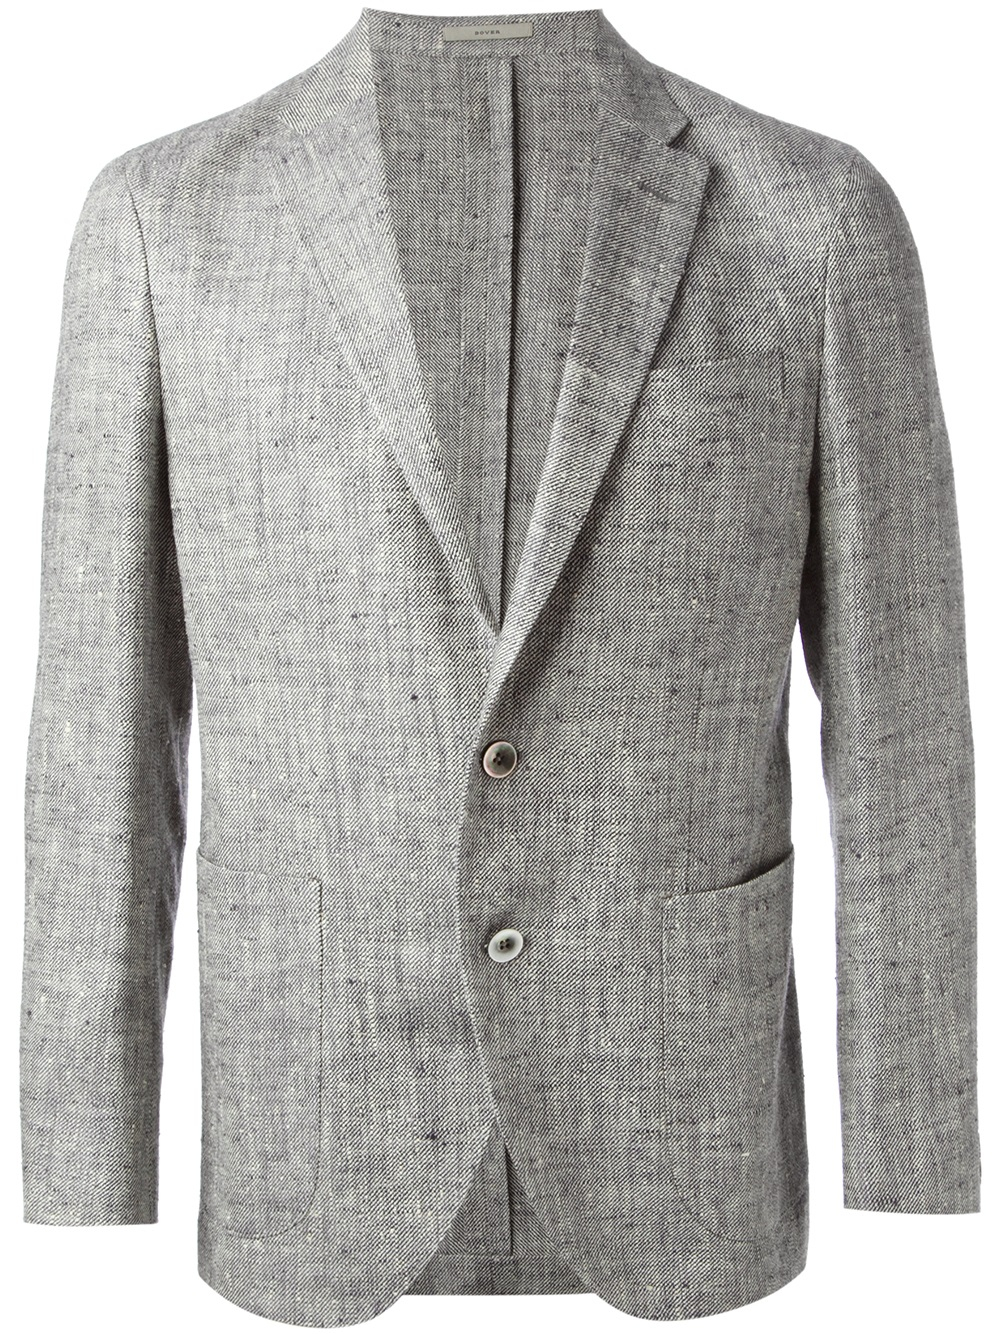 Find great deals on eBay for blue tweed jacket. Shop with confidence.